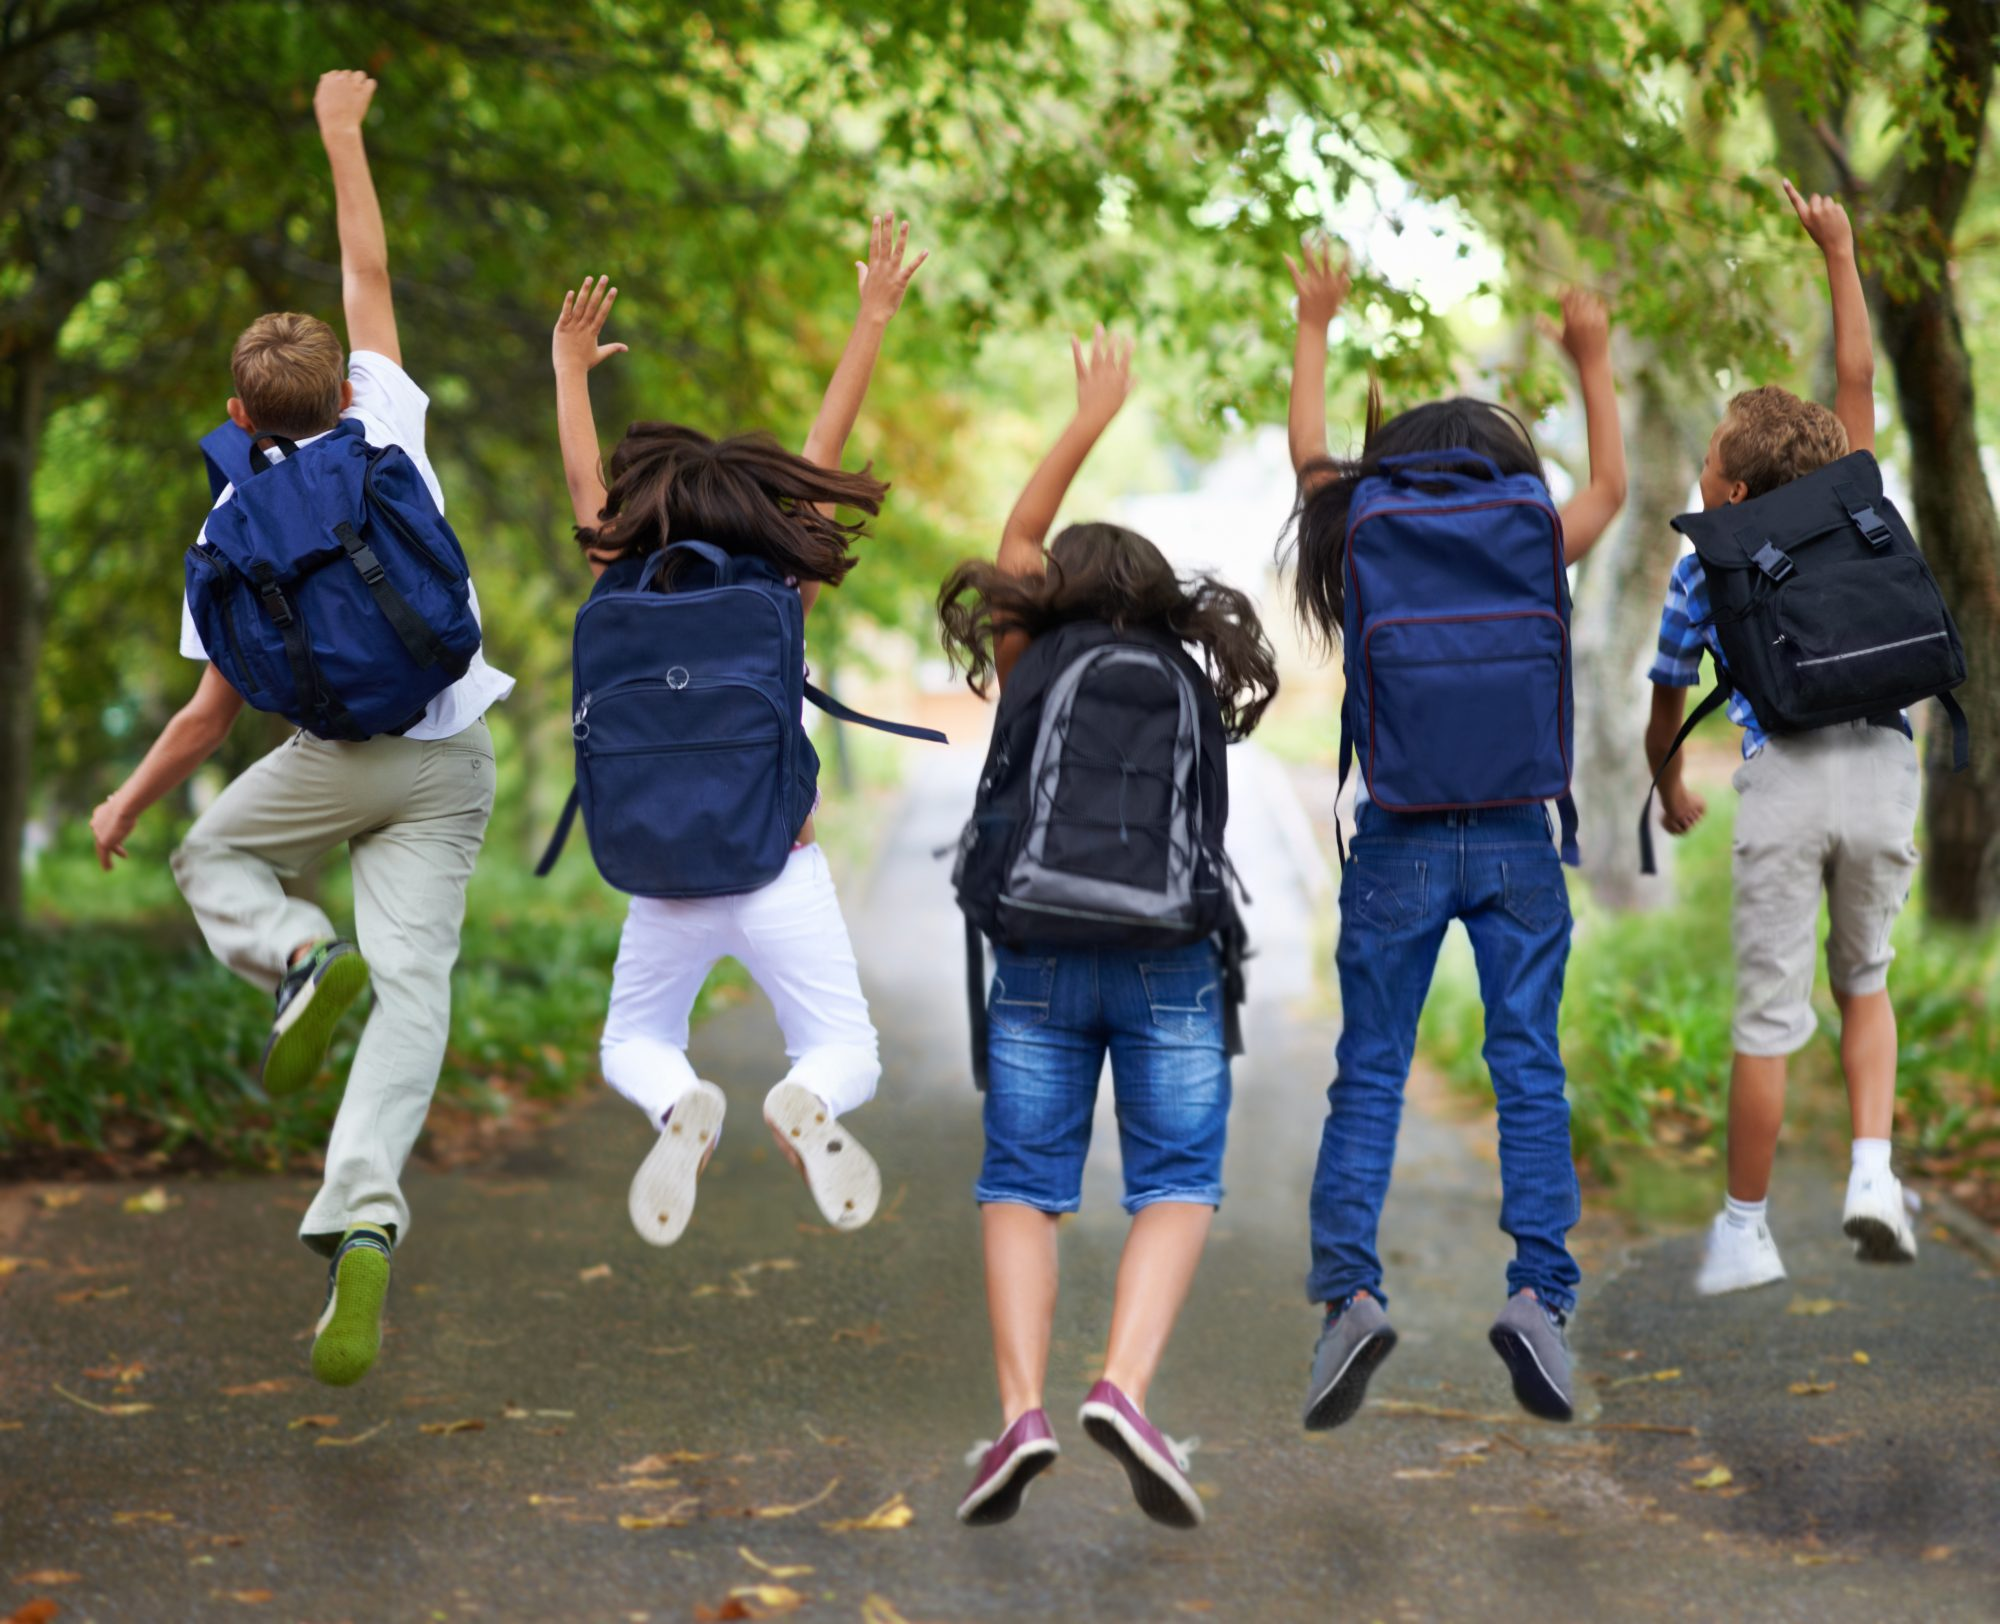 Kids Jumping with Backpacks